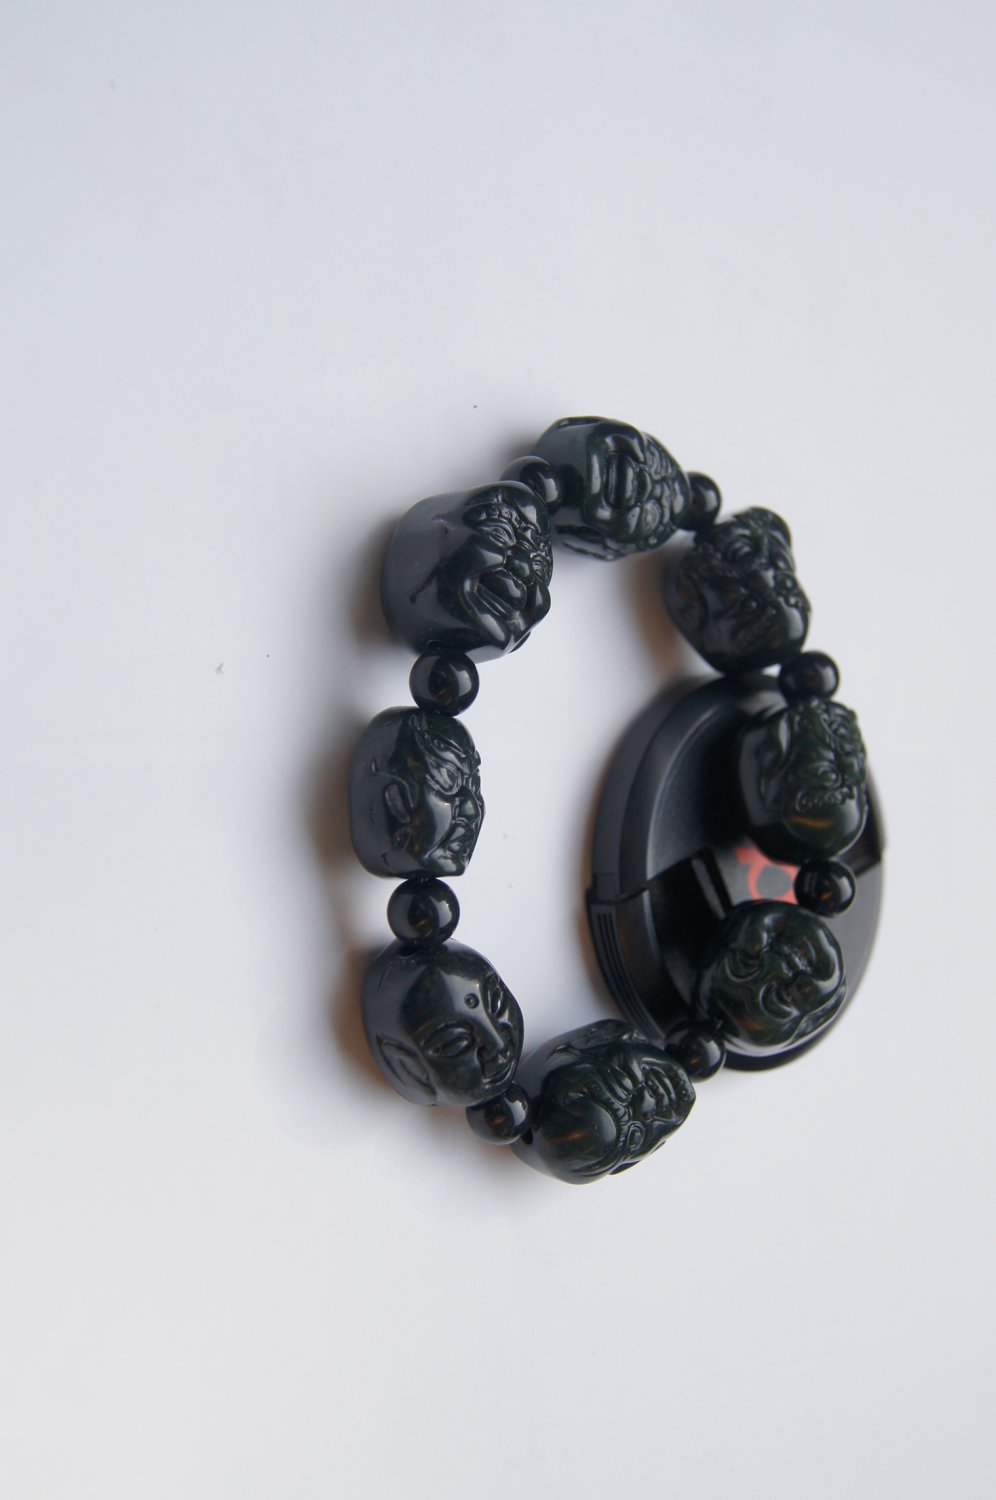 Hand-carved black jade Buddha Lohan head, rubber band string bracelet. Successful men's favorite